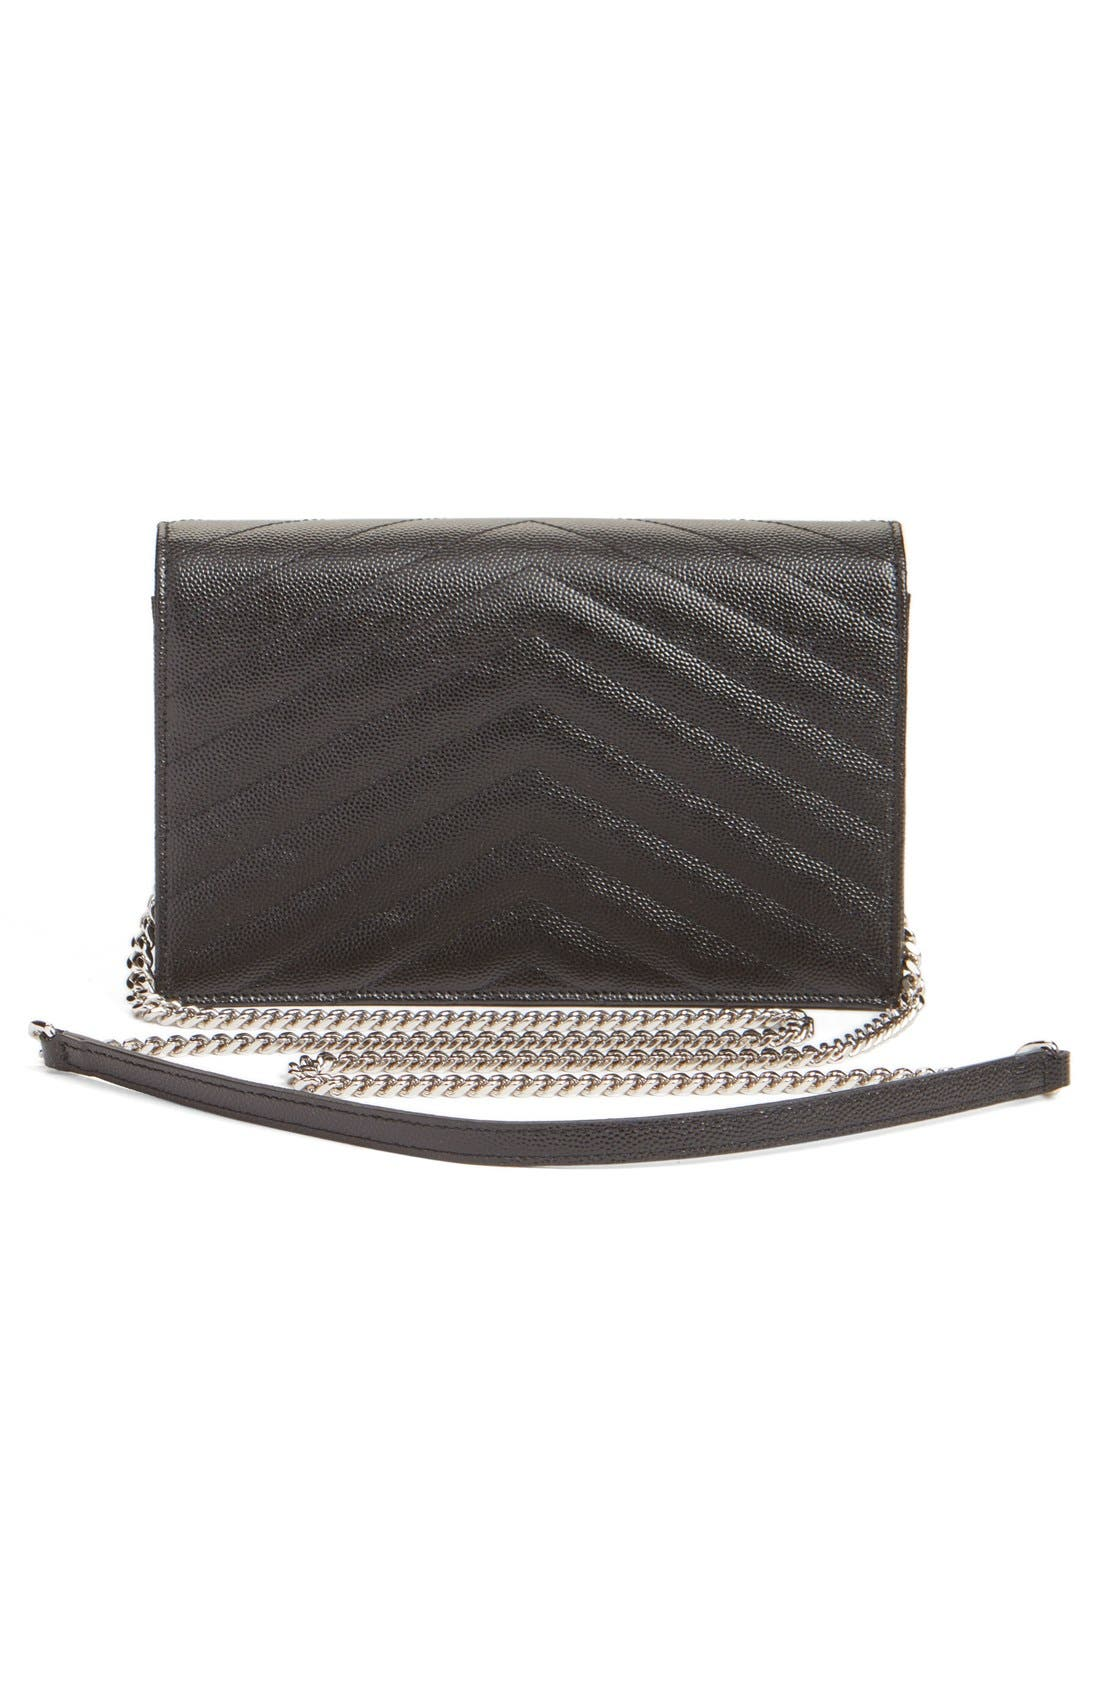 Alternate Image 3  - Saint Laurent Quilted Calfskin Leather Wallet on a Chain